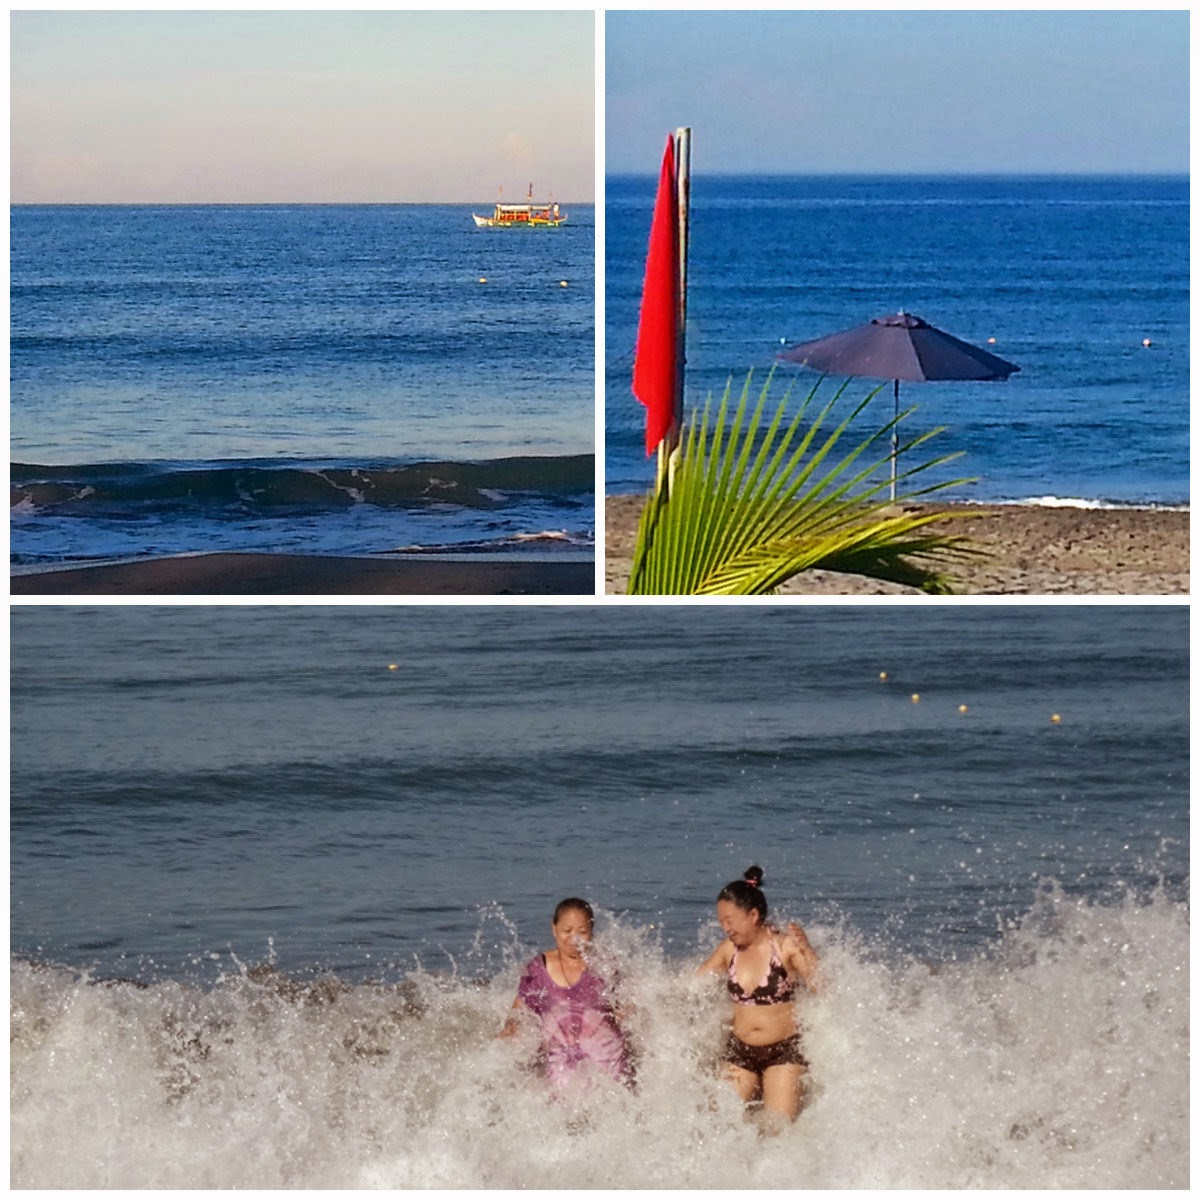 One Is That It Situated Some Distance Away From The Other Resorts Which We Liked Means Beach Was Not Crowded Another Clean With